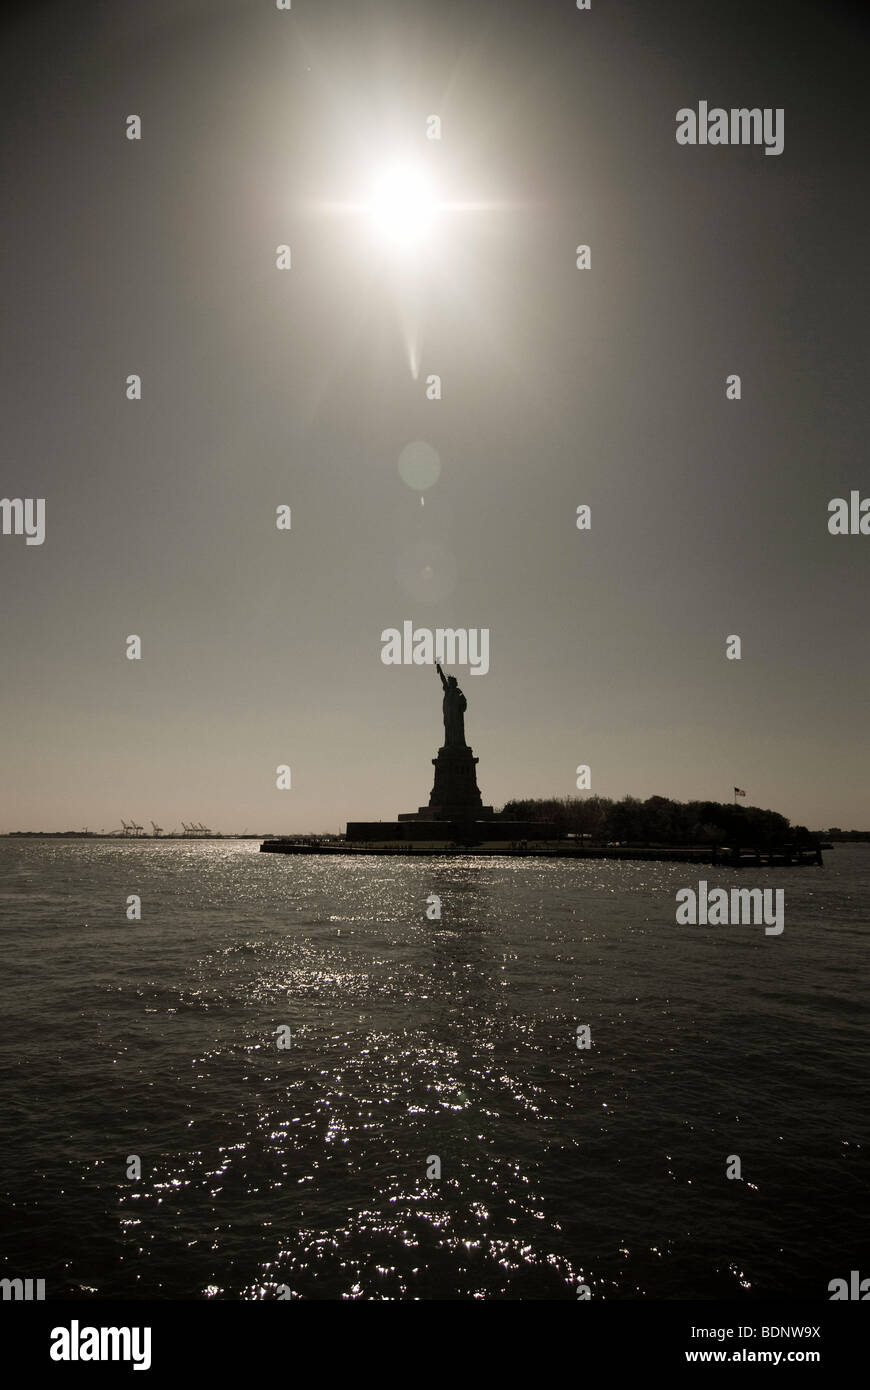 The Statue of Liberty seen from the water in New York Harbor, USA. - Stock Image